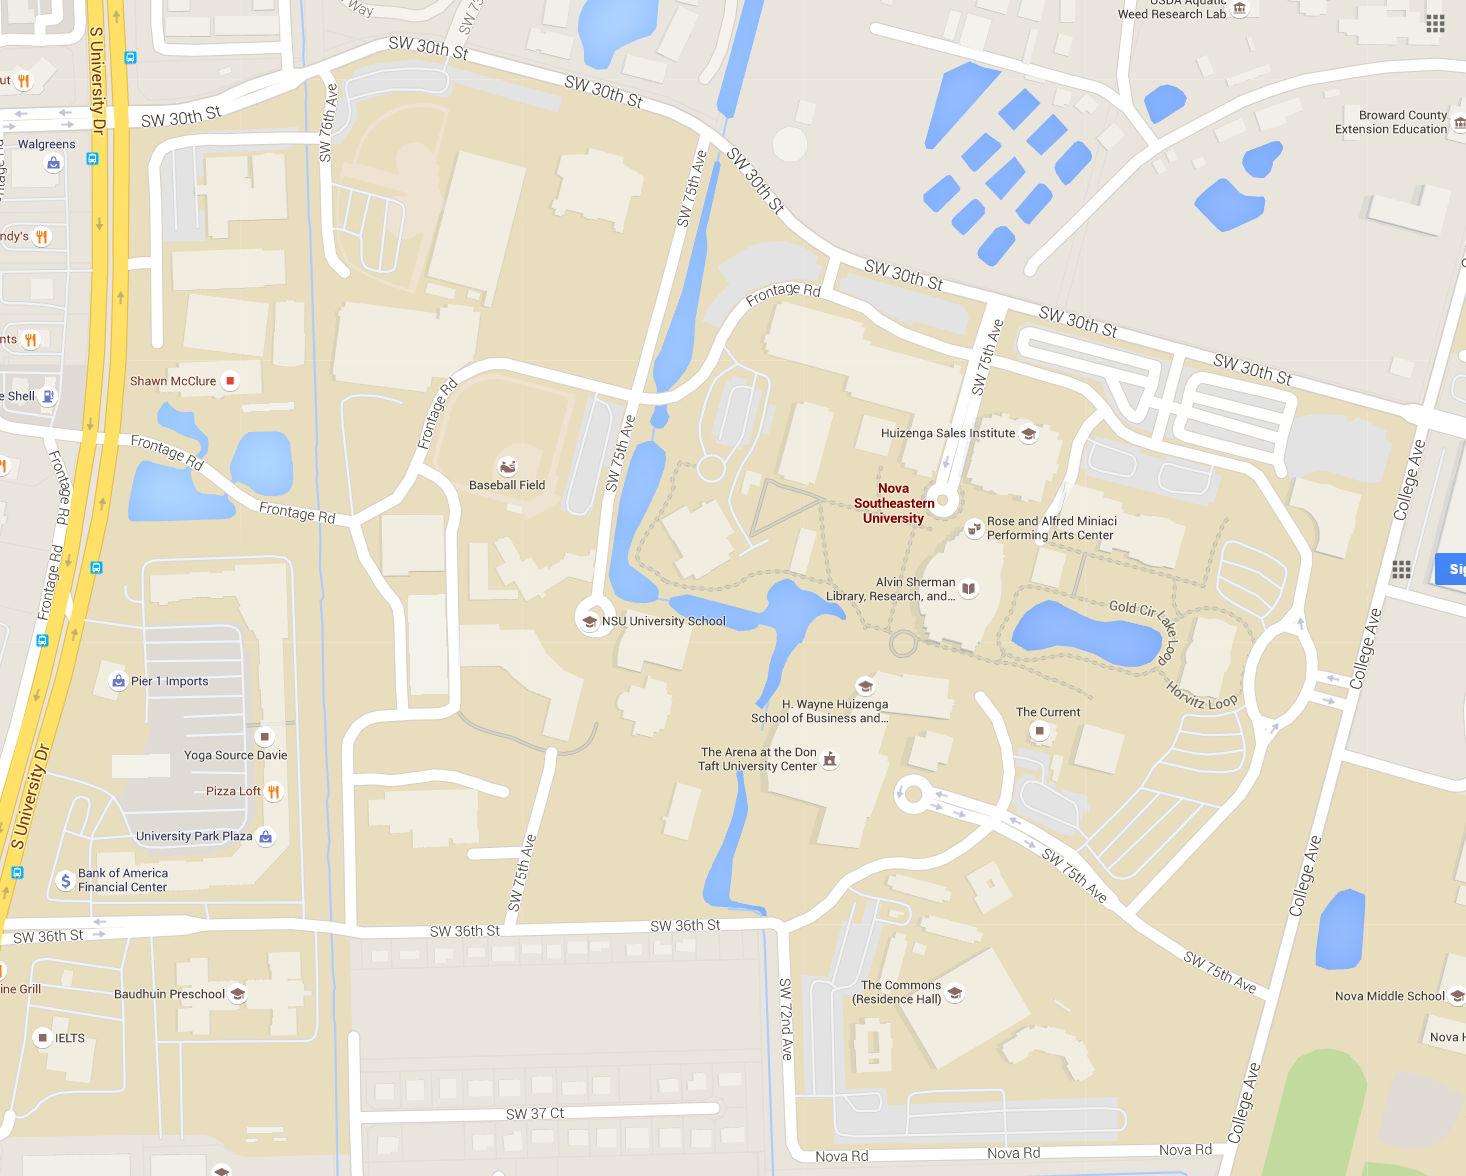 Broward College Central Campus Map nuclear map on howard university campus map, brandon campus map, broward college campuses, university of delaware campus map, new york university campus map, broward college student life, university of louisville campus map, broward college education, broward college overview, broward college building, wayne state university campus map, jupiter campus map, middle tennessee state university campus map, broward college campus security, university of houston campus map, broward college bookstore, boise state university campus map, broward college virtual tour, homestead campus map, idaho state university campus map,